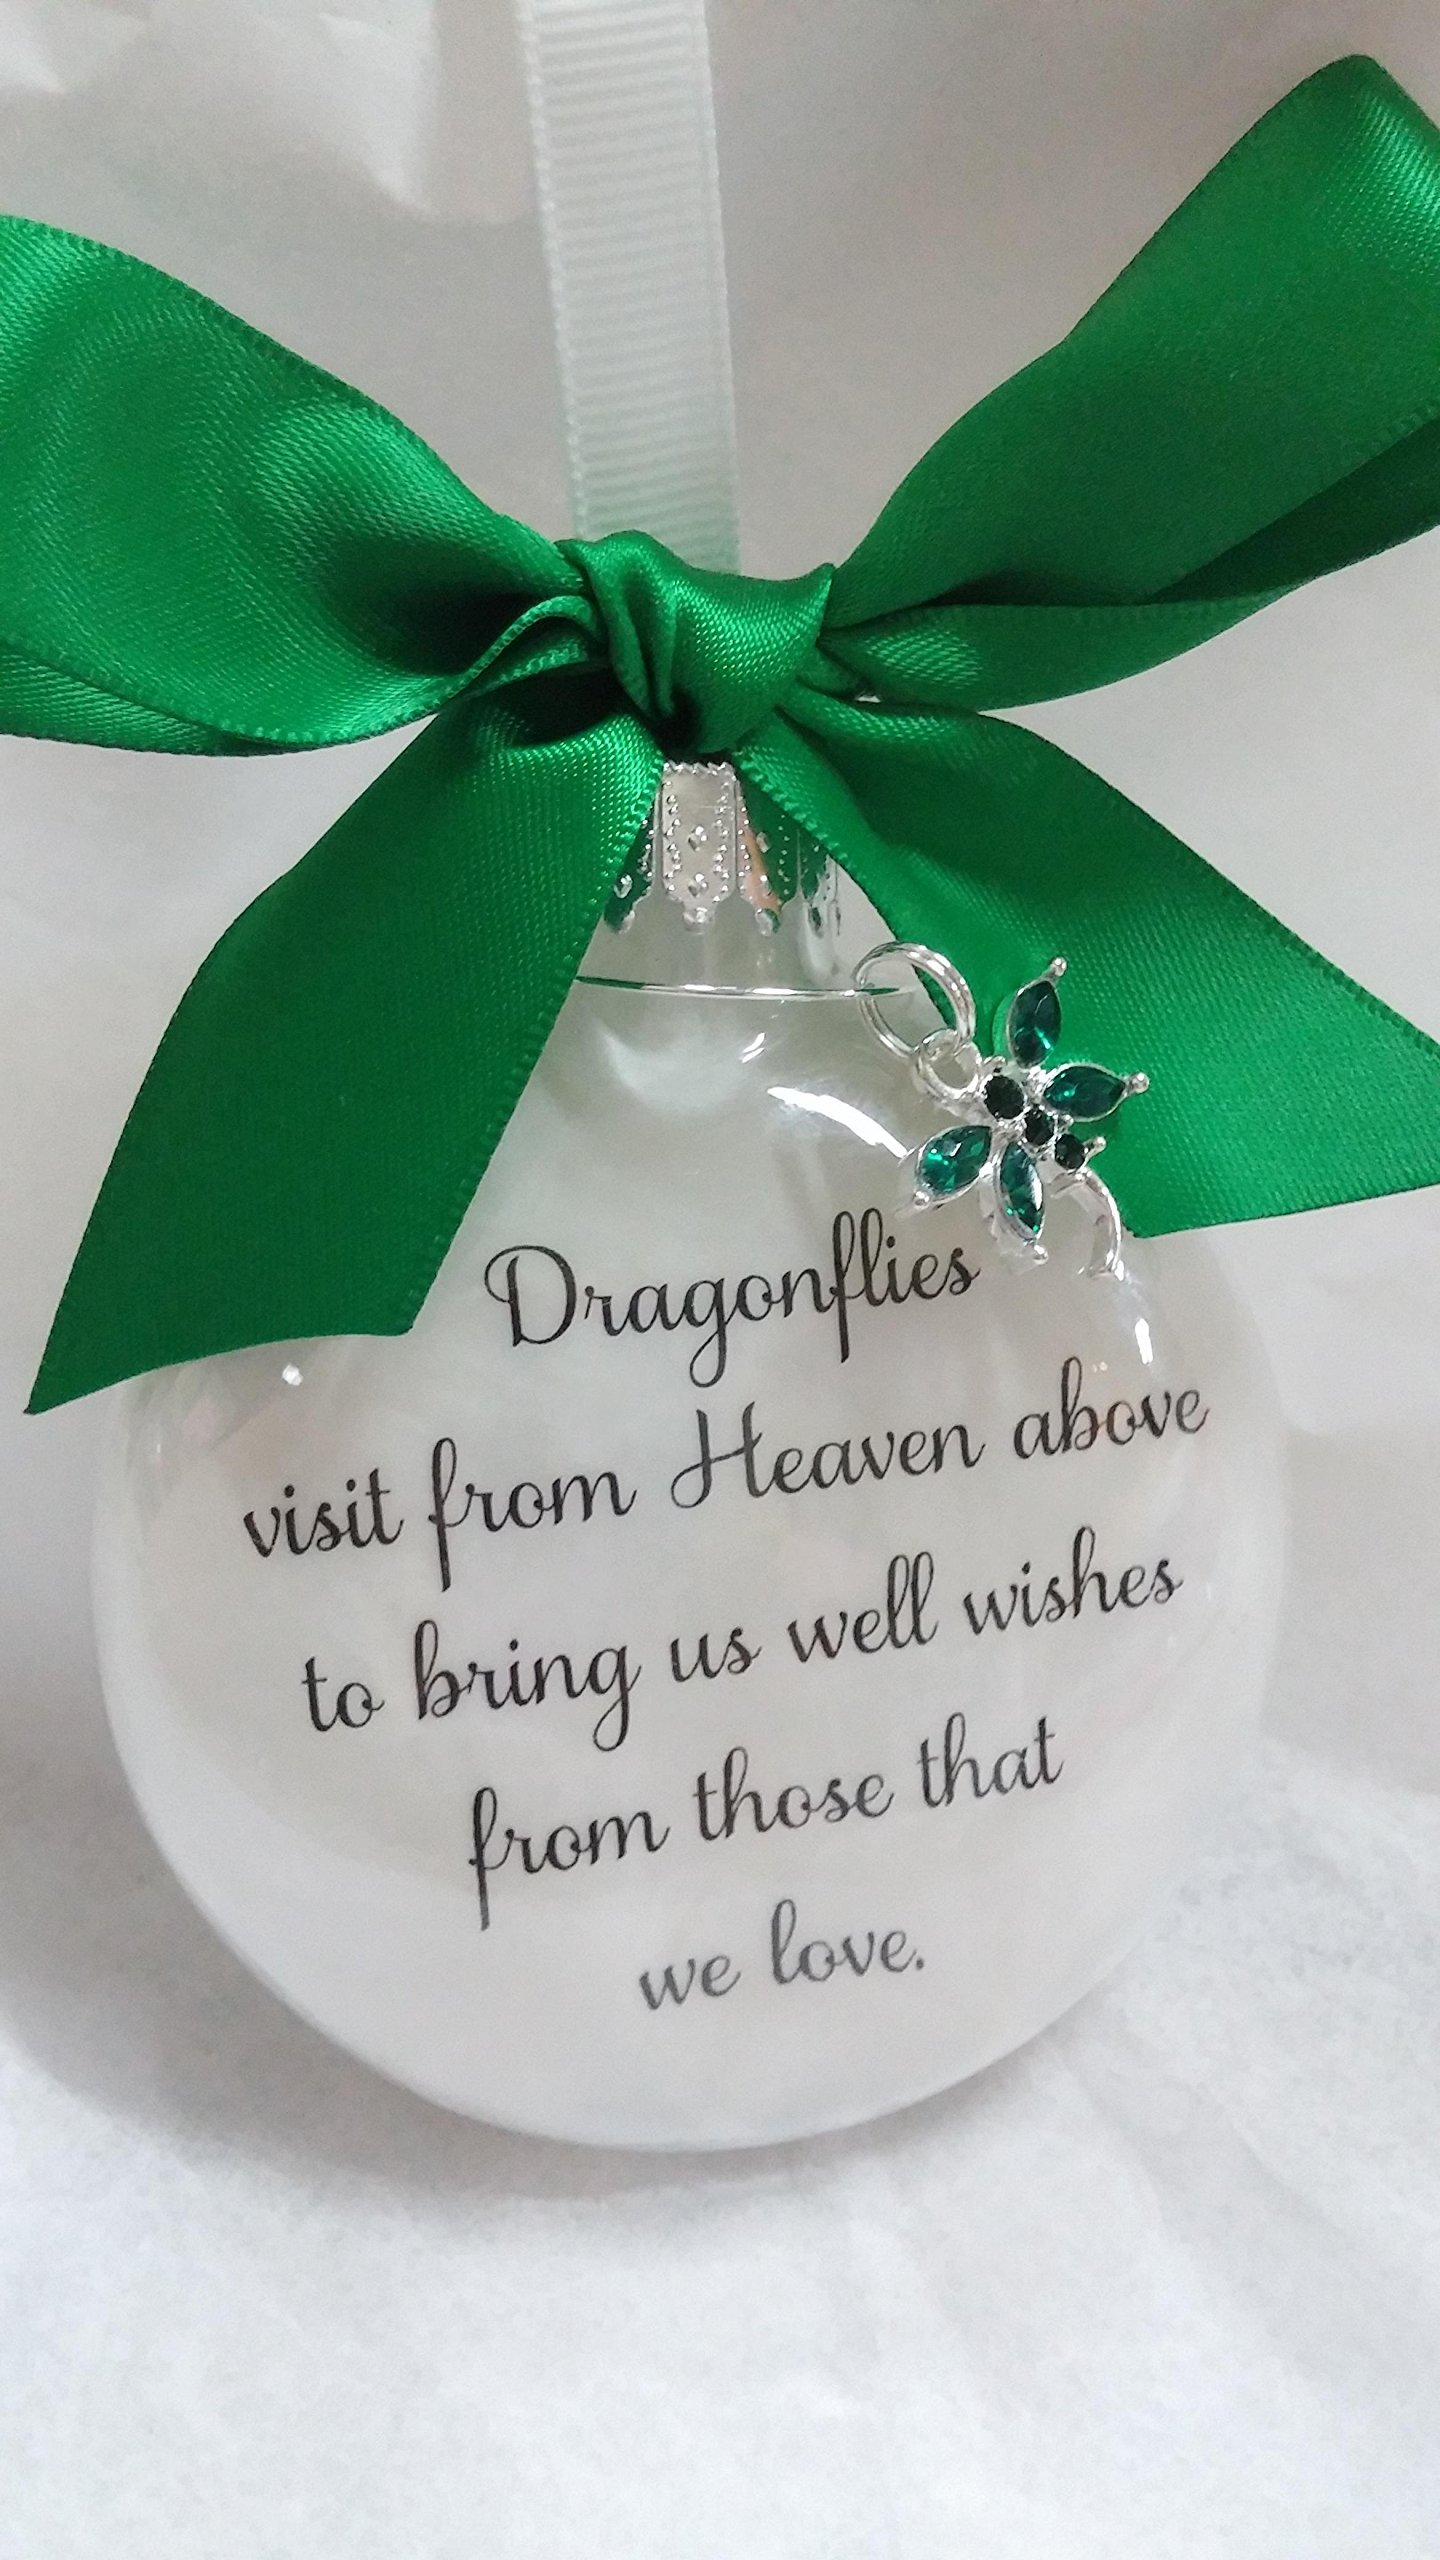 Dragonfly Memorial Christmas Ornament w/ Green Crystal - Dragonflies visit from Heaven